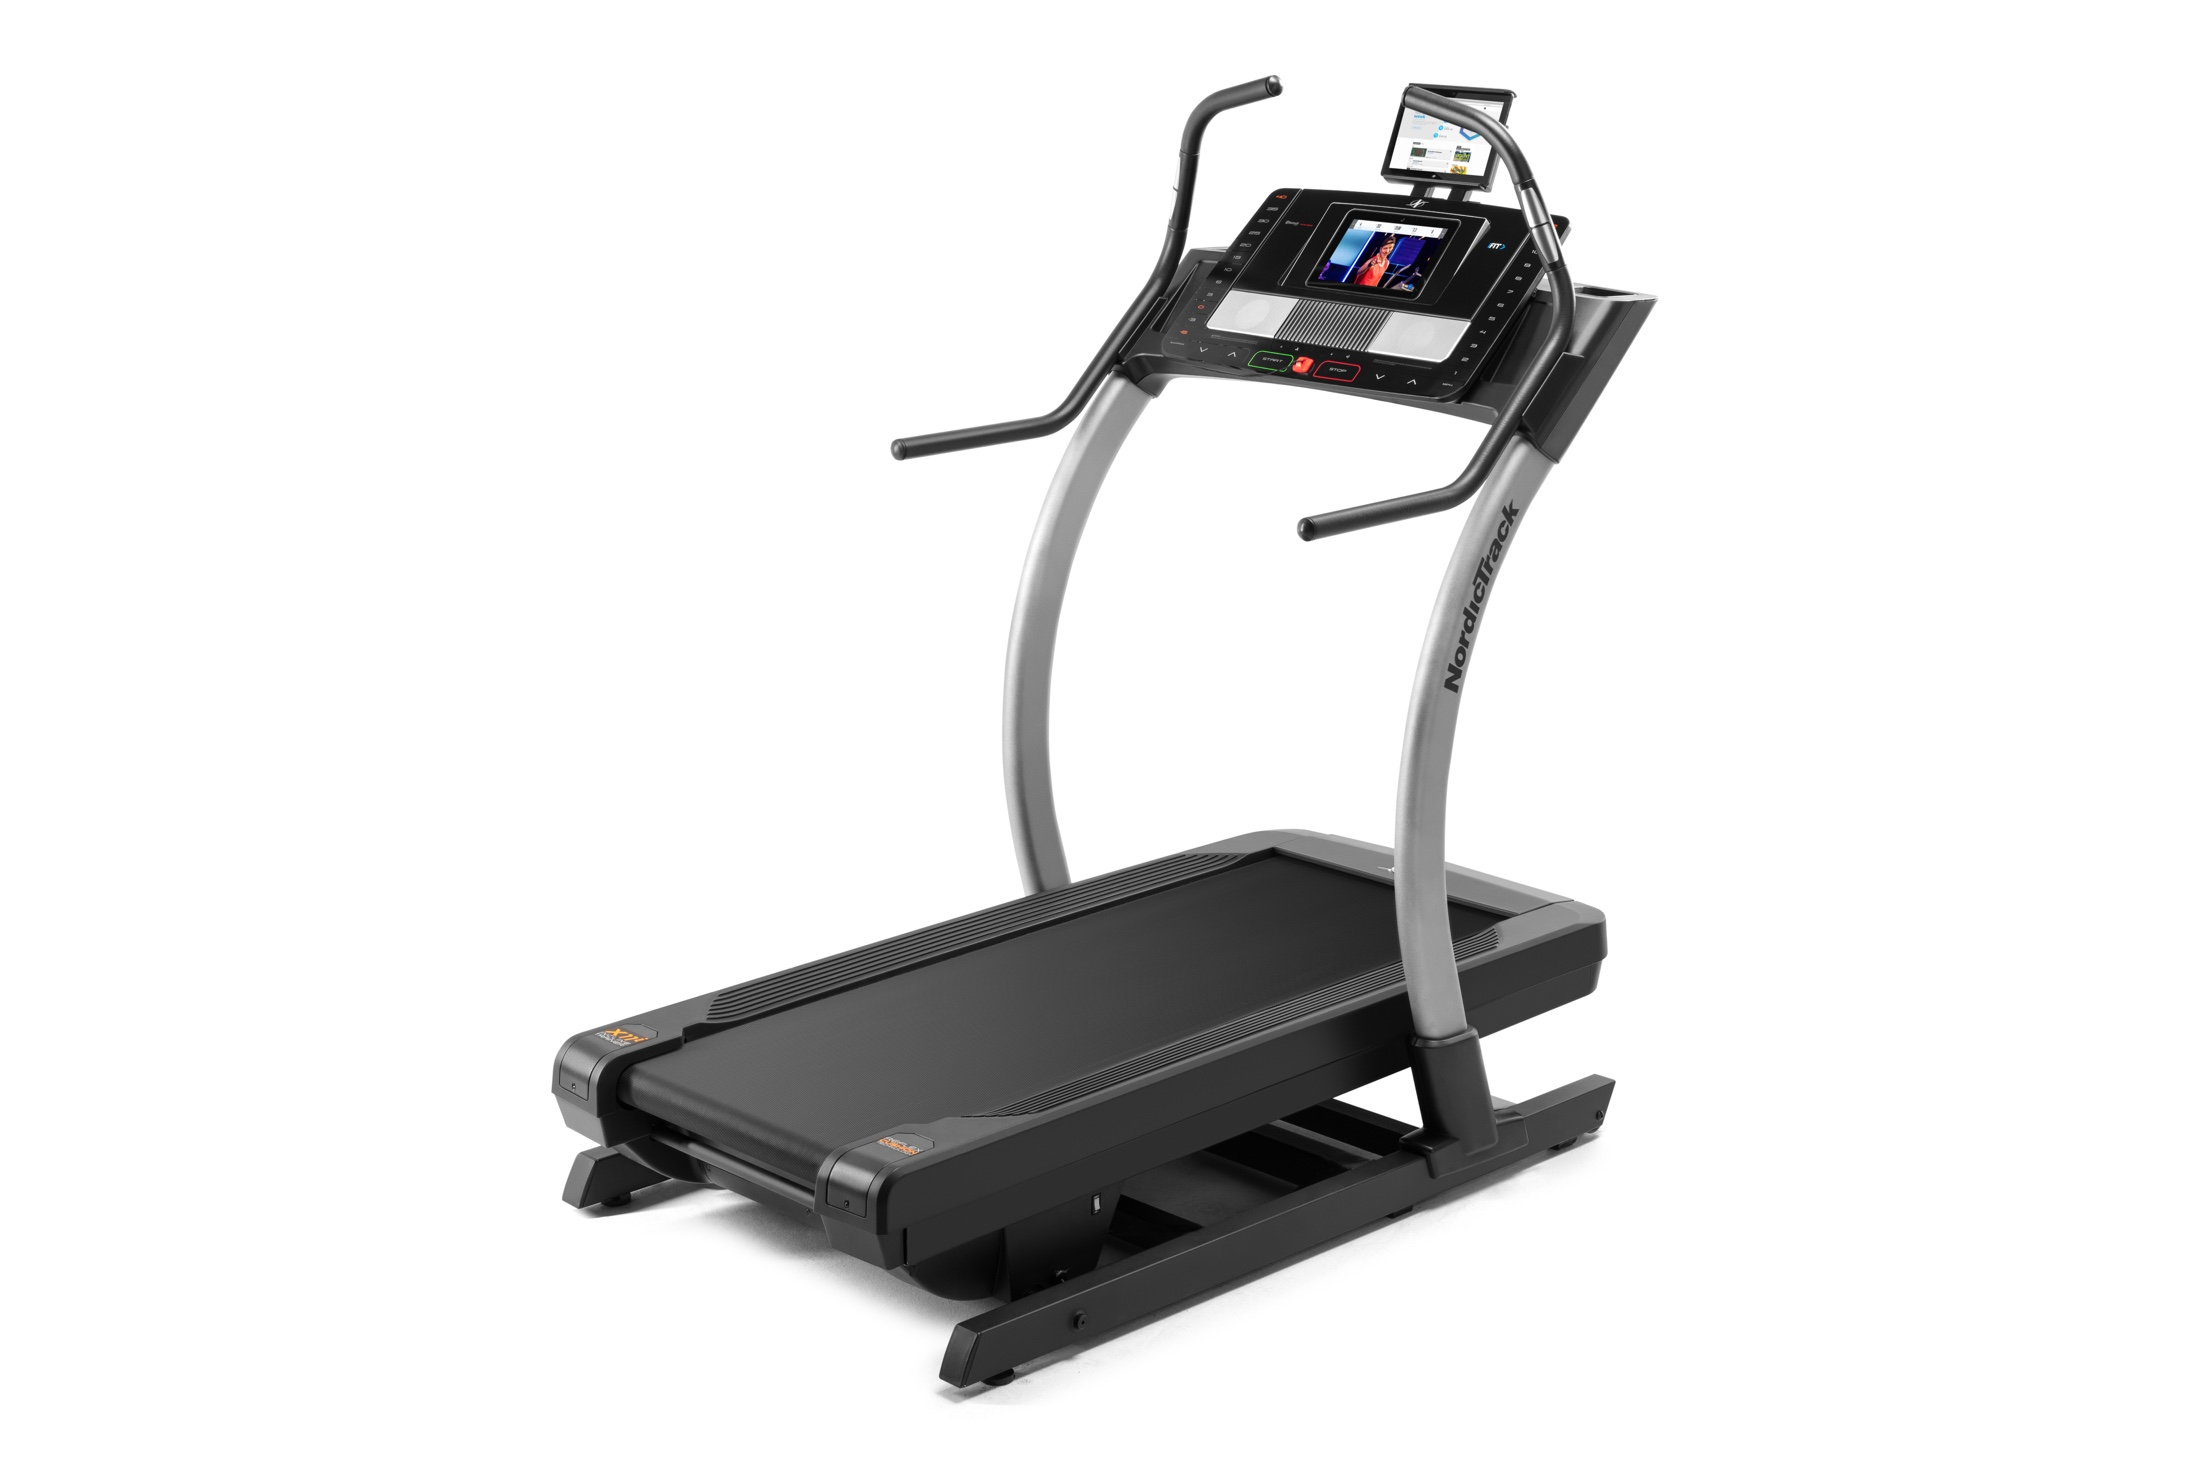 NordicTrack X11i Incline Trainer gallery image 1